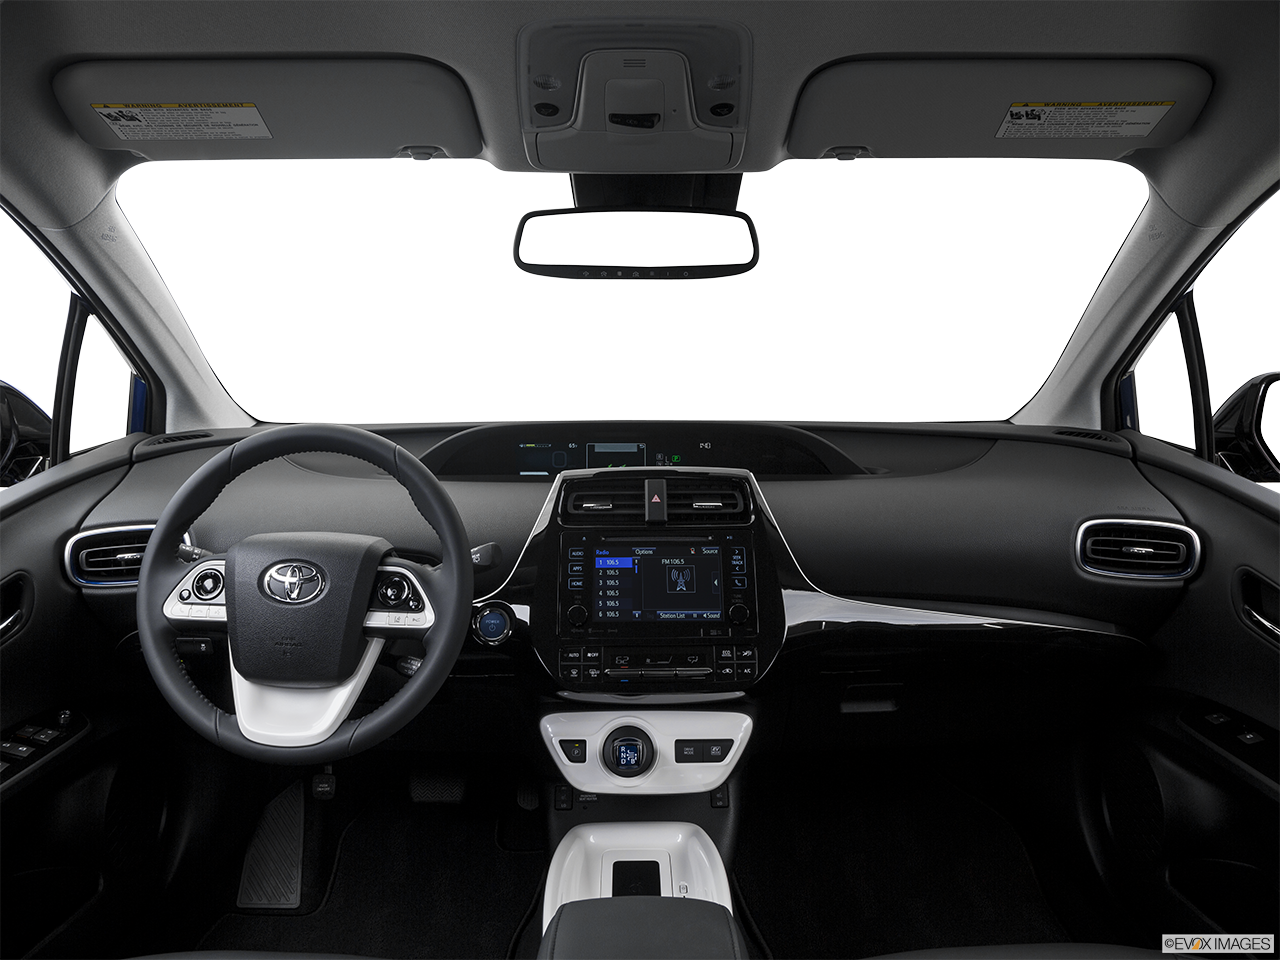 2016 Toyota Prius Hampton Roads Casey Interior View Of In